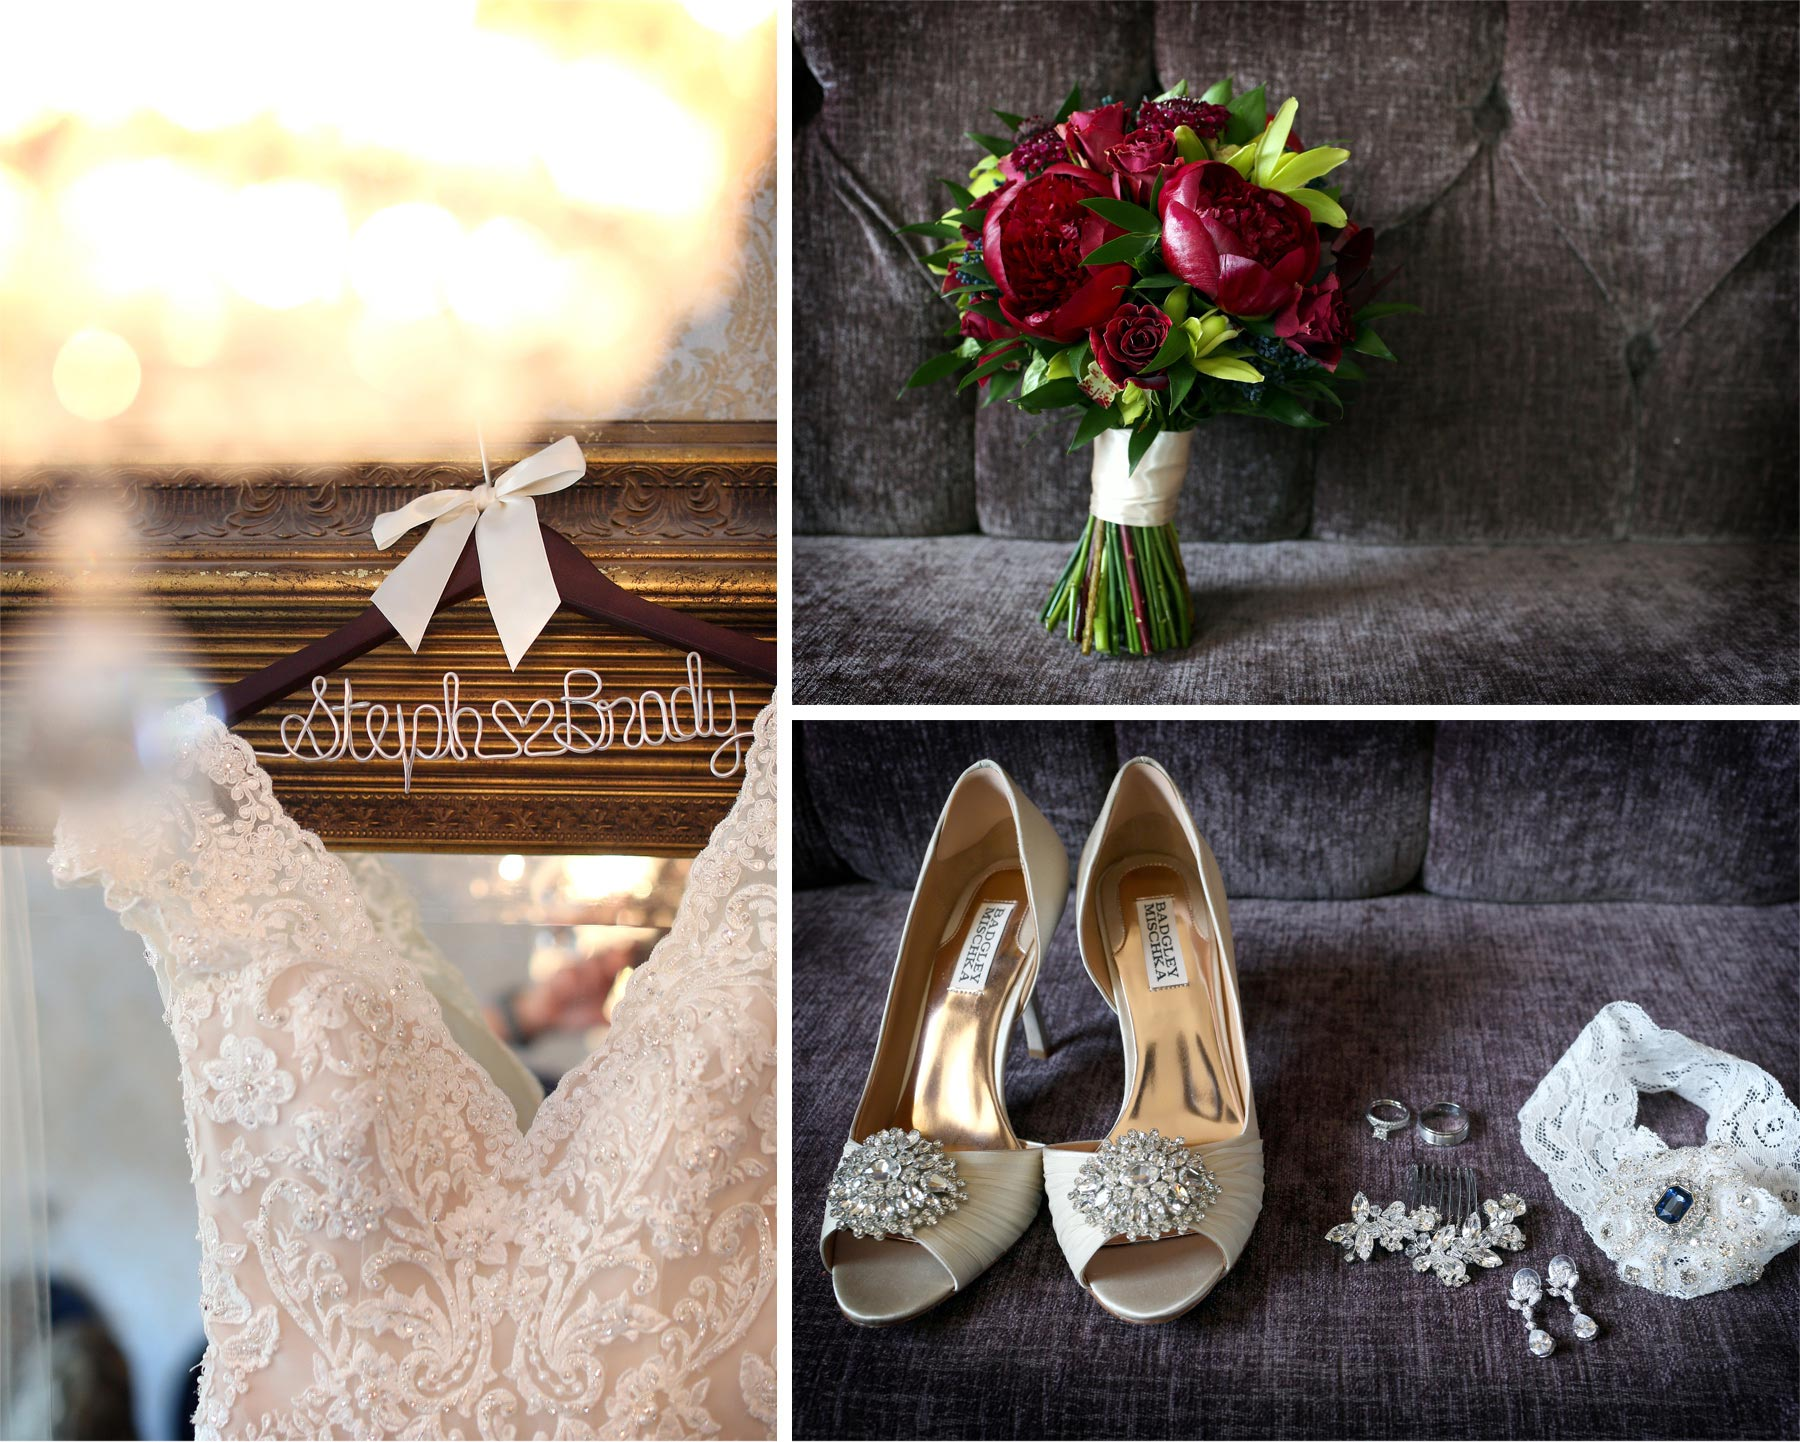 01-Minneapolis-Minnesota-Wedding-Photographer-by-Andrew-Vick-Photography-Summer-Semple-Mansion-Getting-Ready-Dress-Hanger-Flowers-Shoes-Jewelry-Rings-Earrings-Hair-Pin-Clip-Garter-Stephanie-and-Brady.jpg